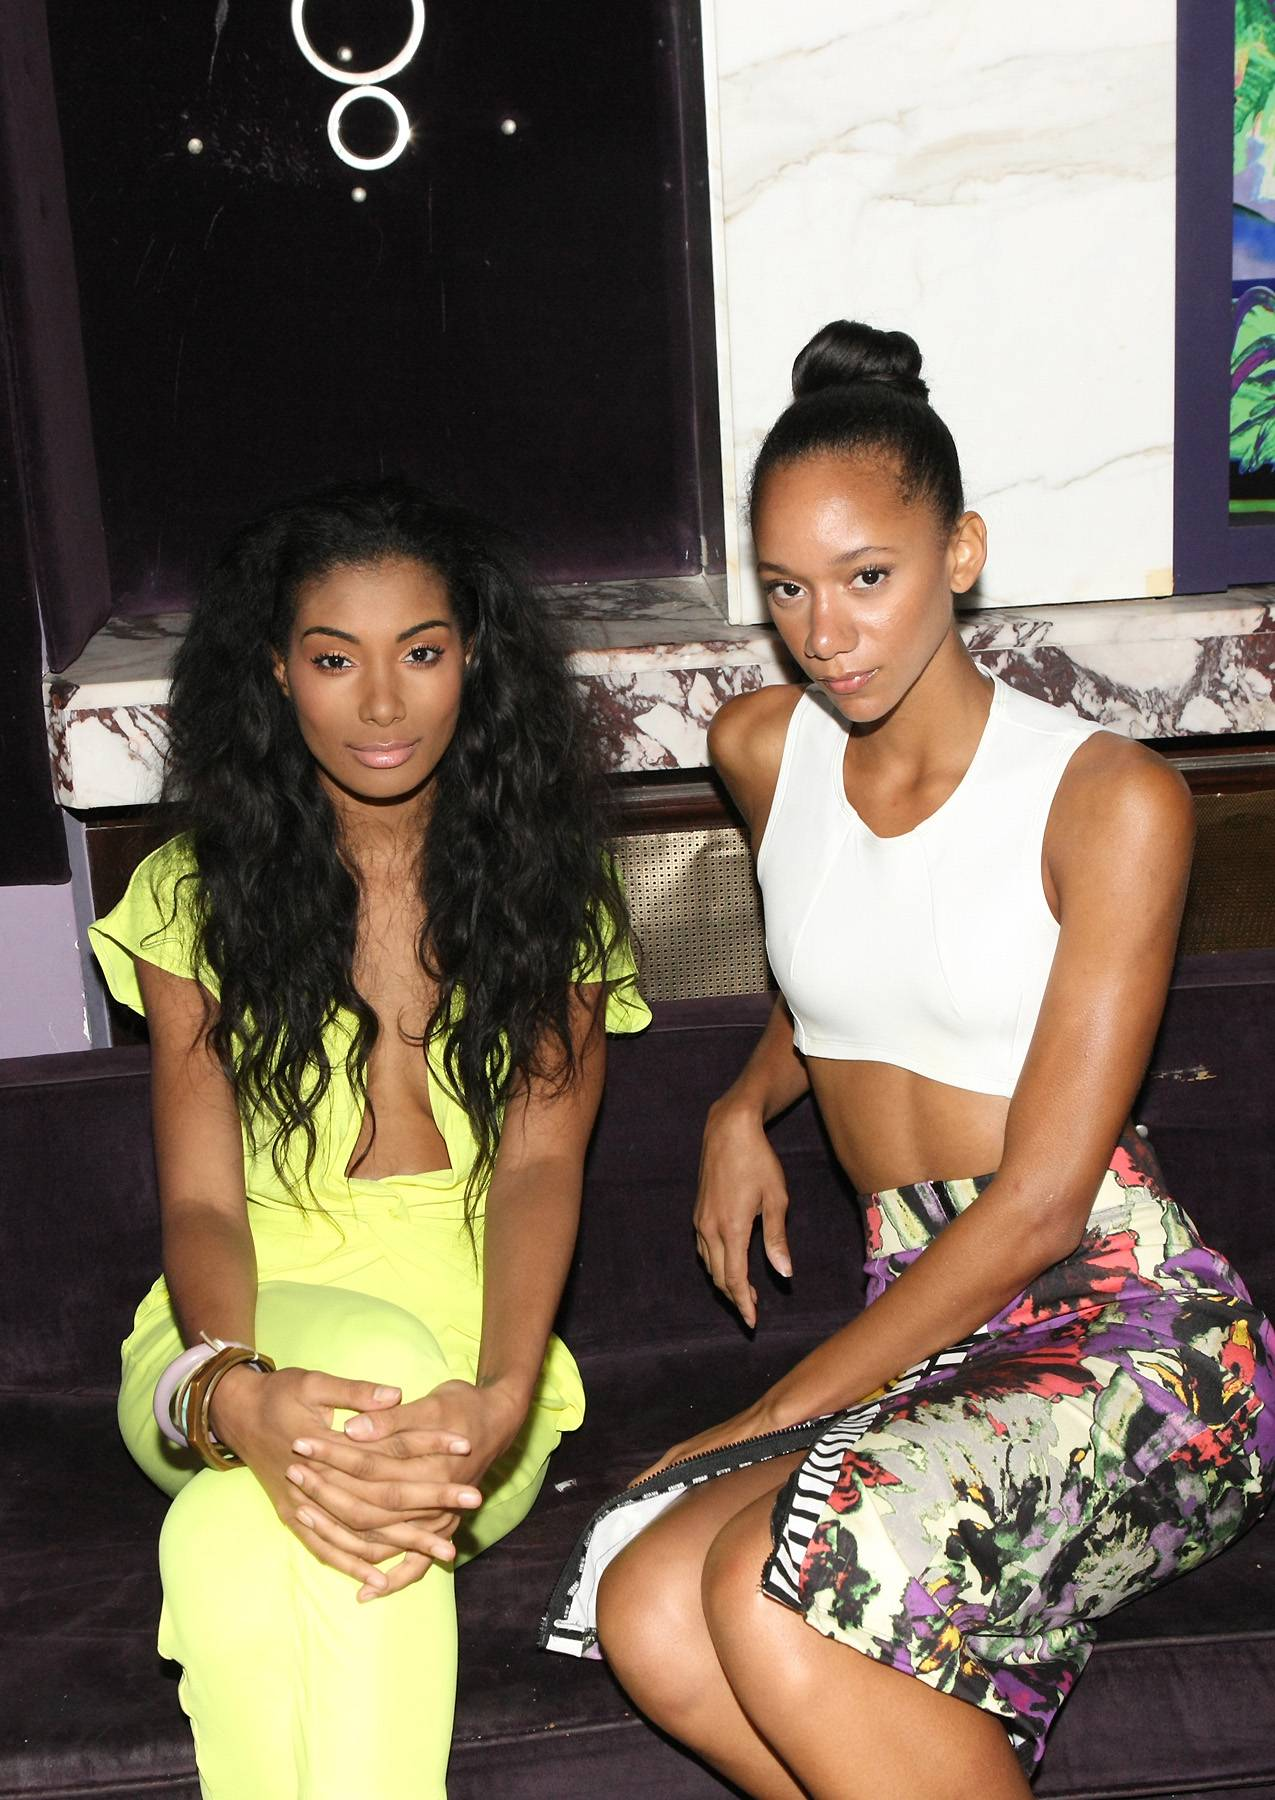 Smize - Tyra would be proud as these models smize for the camera backstage. (Photo: Bennett Raglin/BET/Getty Images for BET)